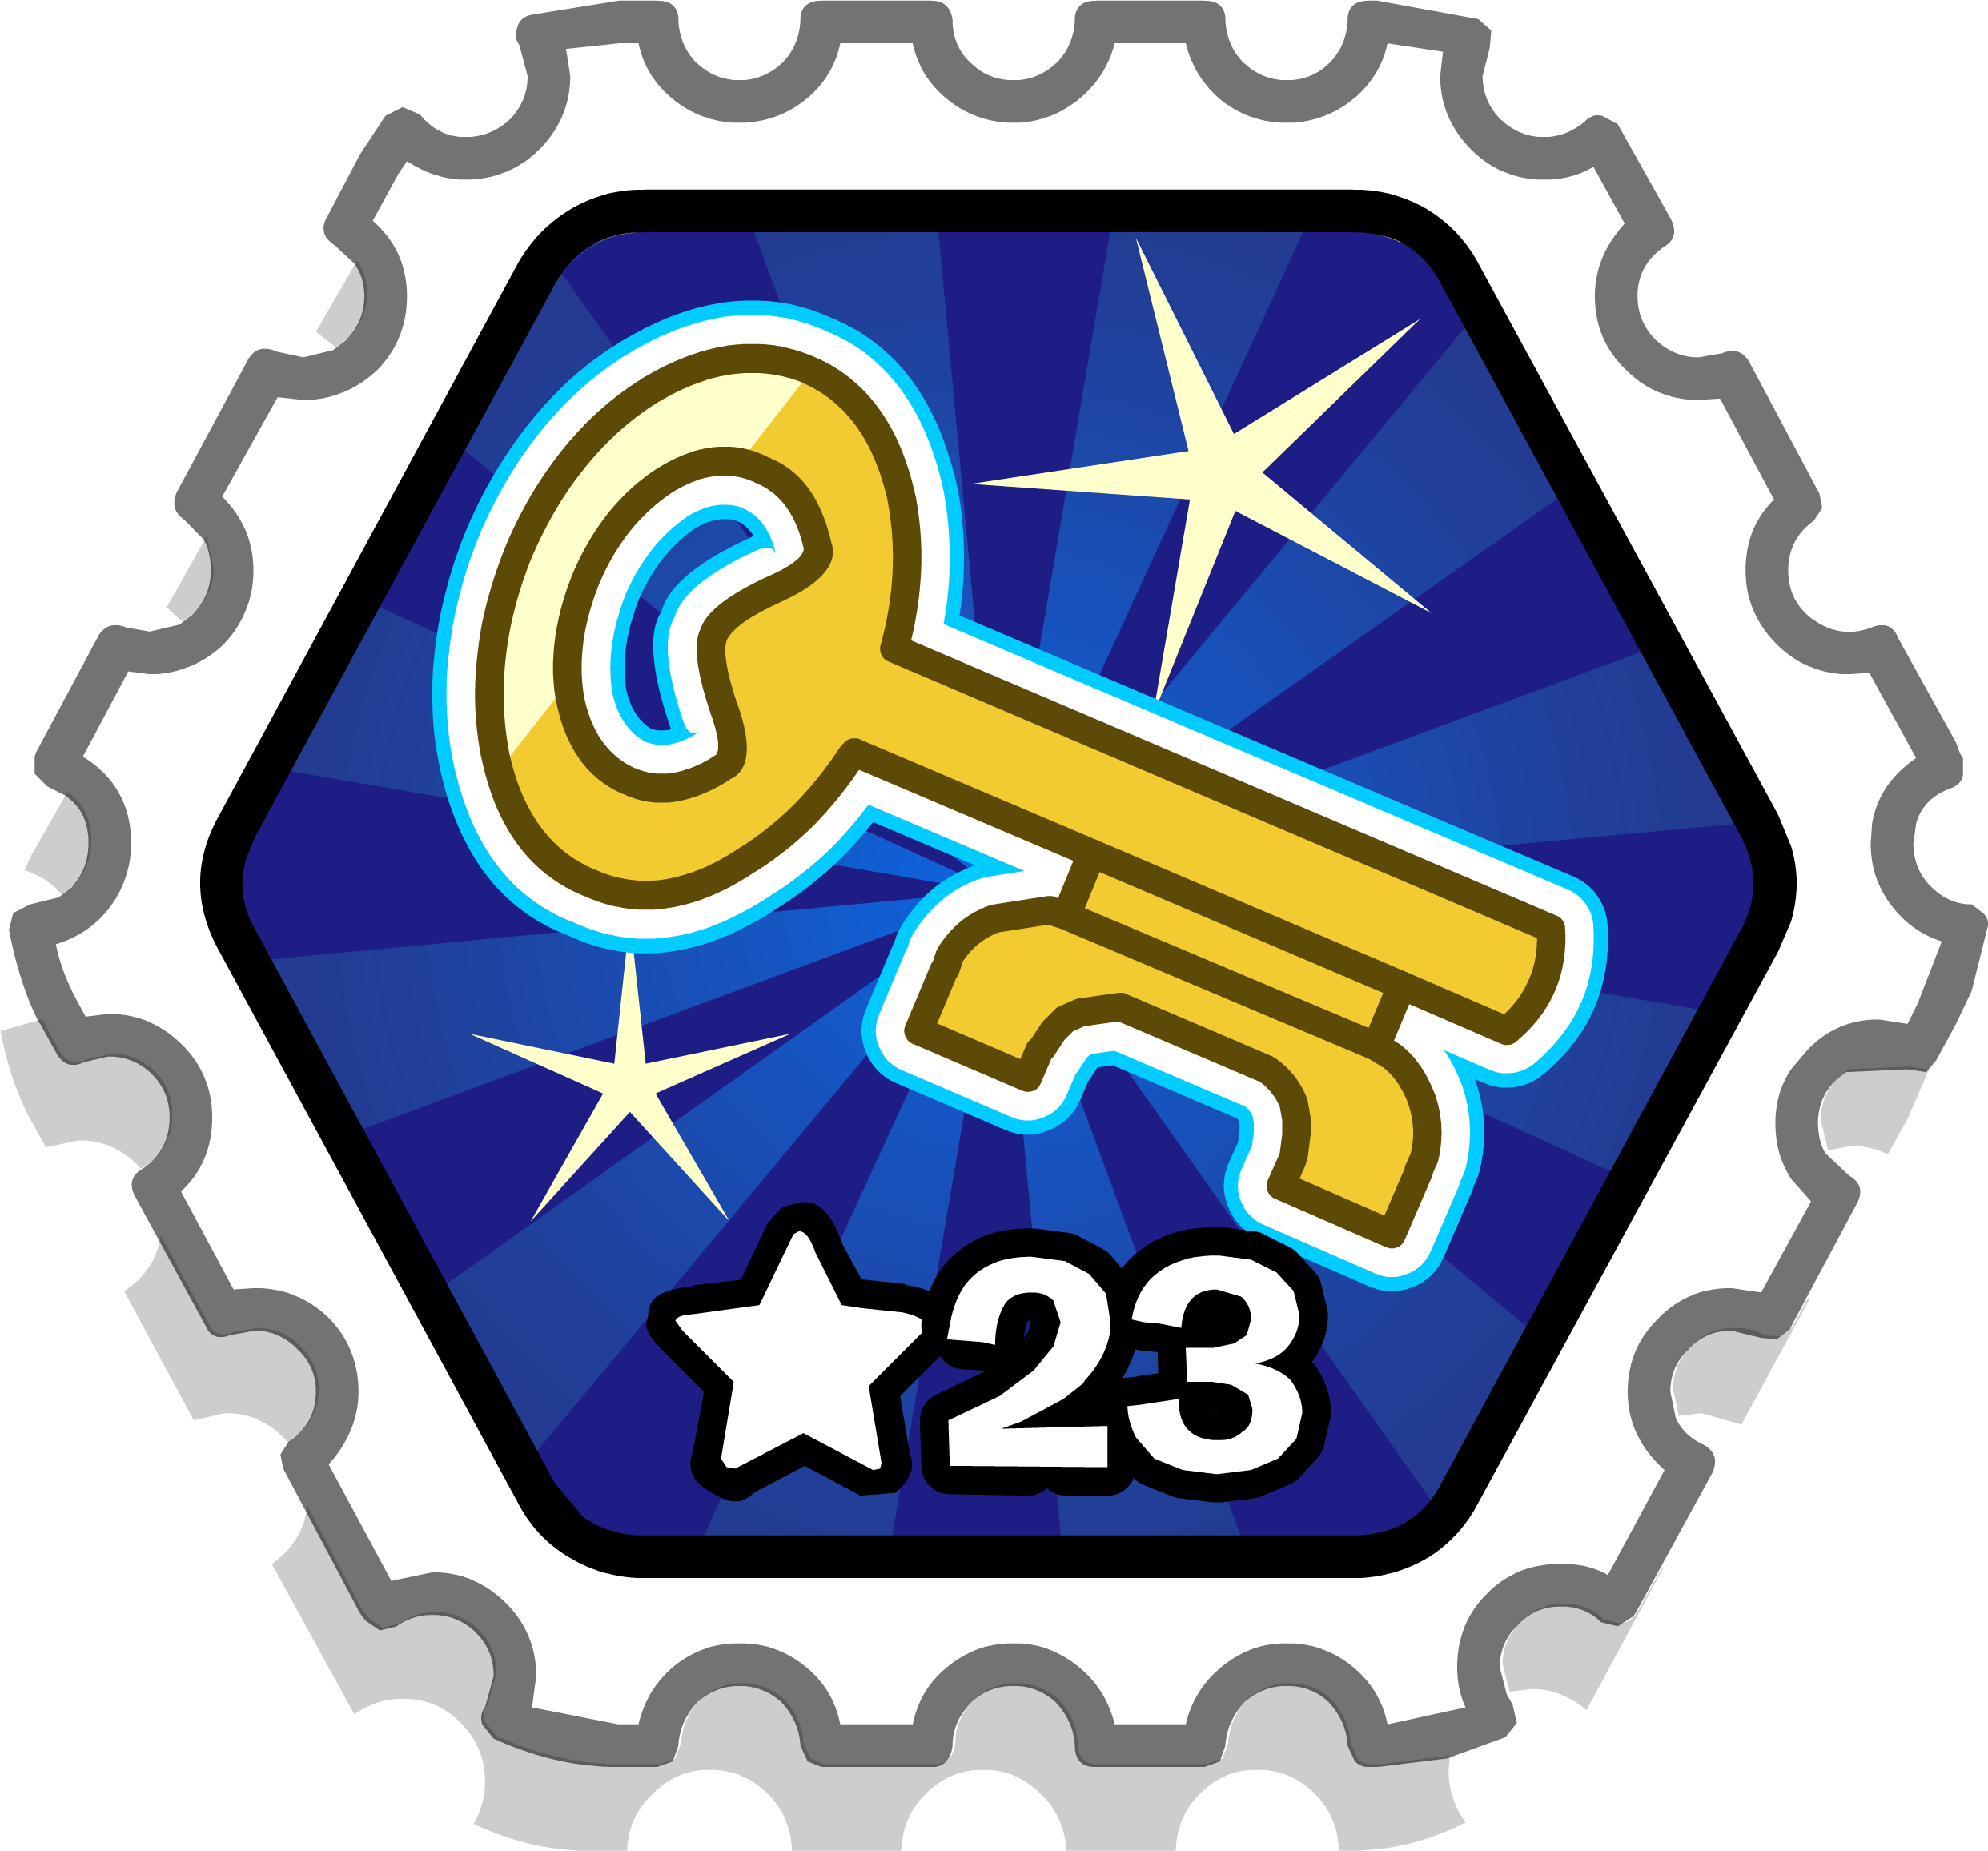 Ice Master Stamp (Pufflescape)